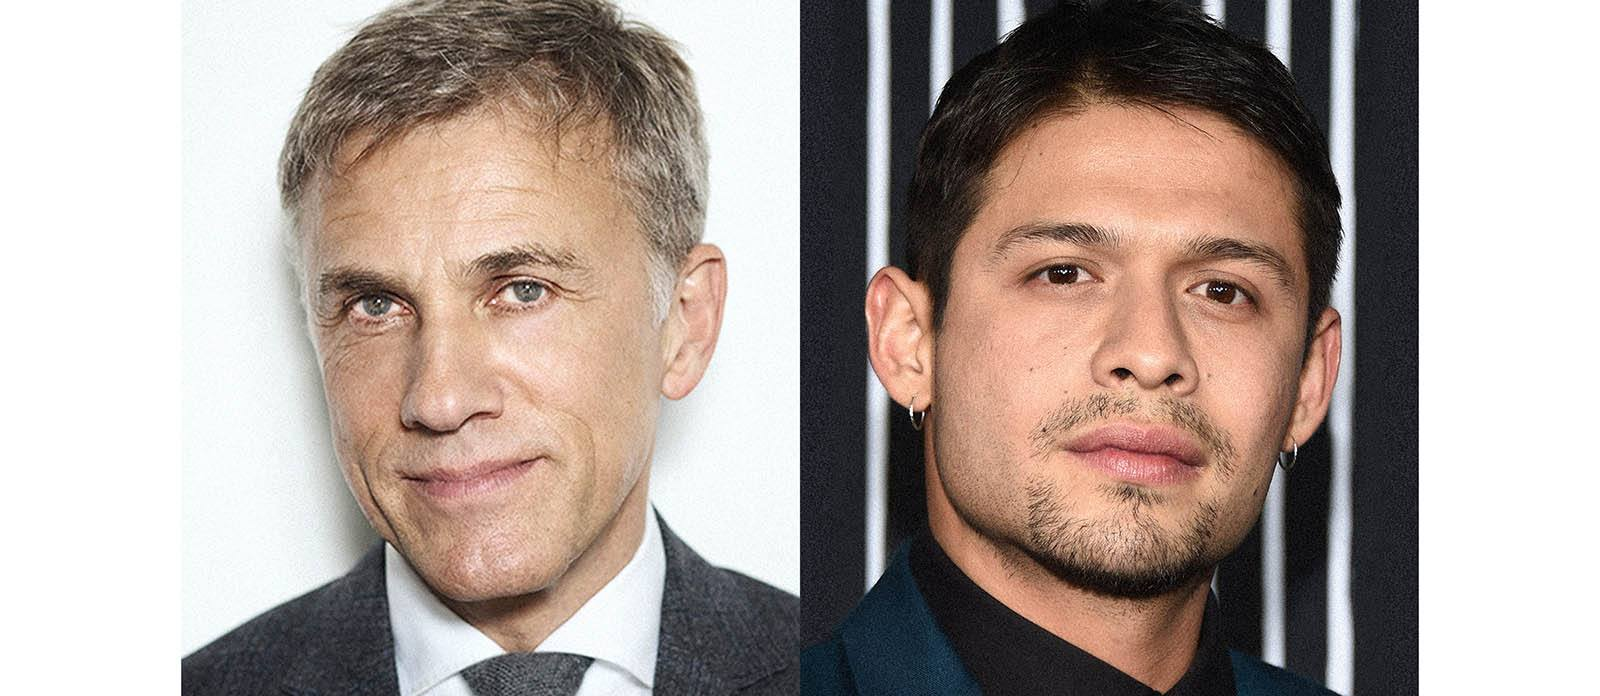 A photo of actors Christoph Waltz and David Castañeda of Most Dangerous Game